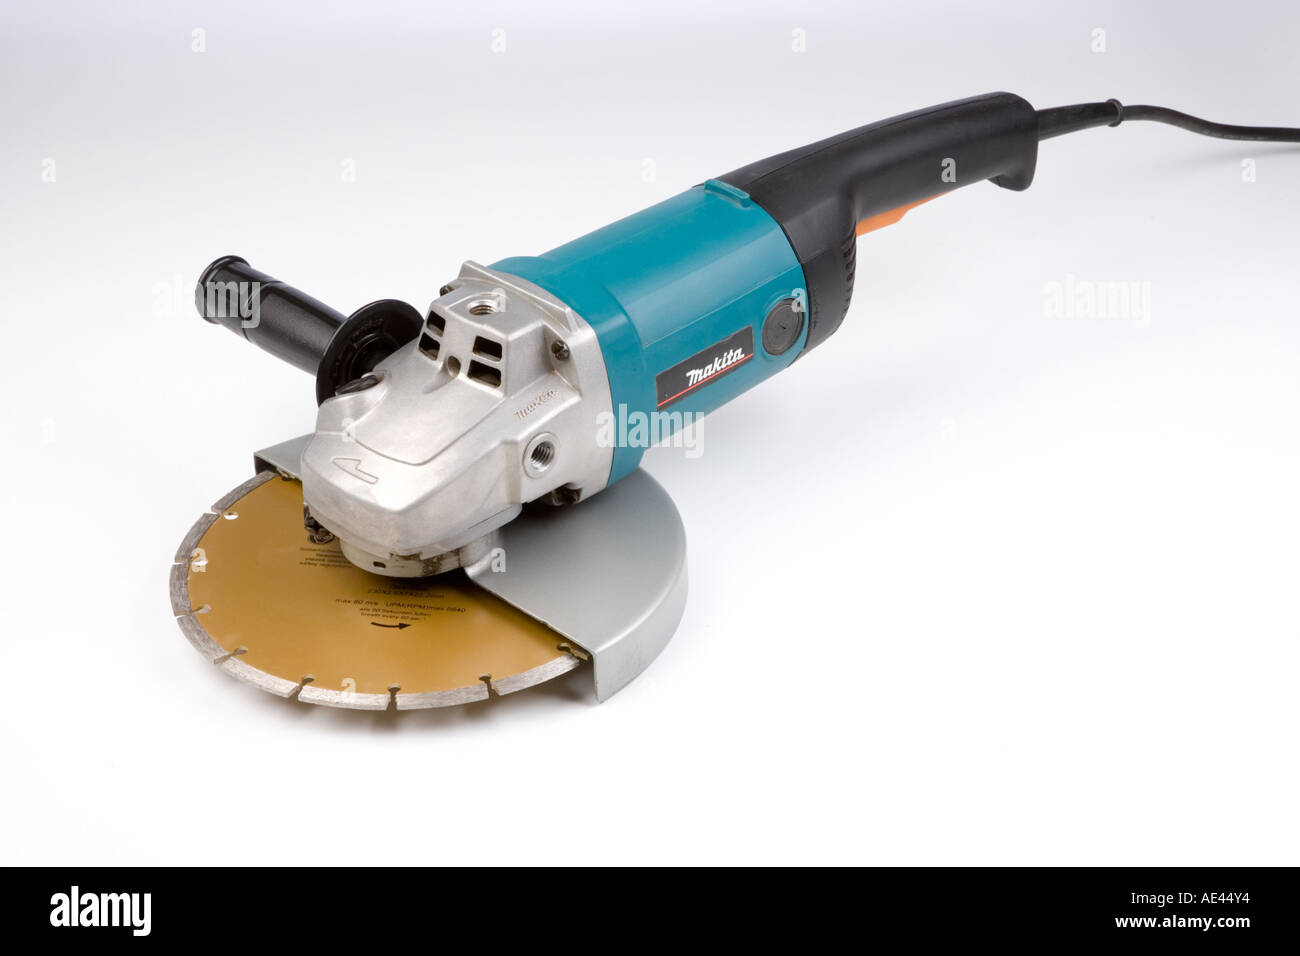 an electric grinder with 9 inch diamond coated cutting wheel Stock Photo